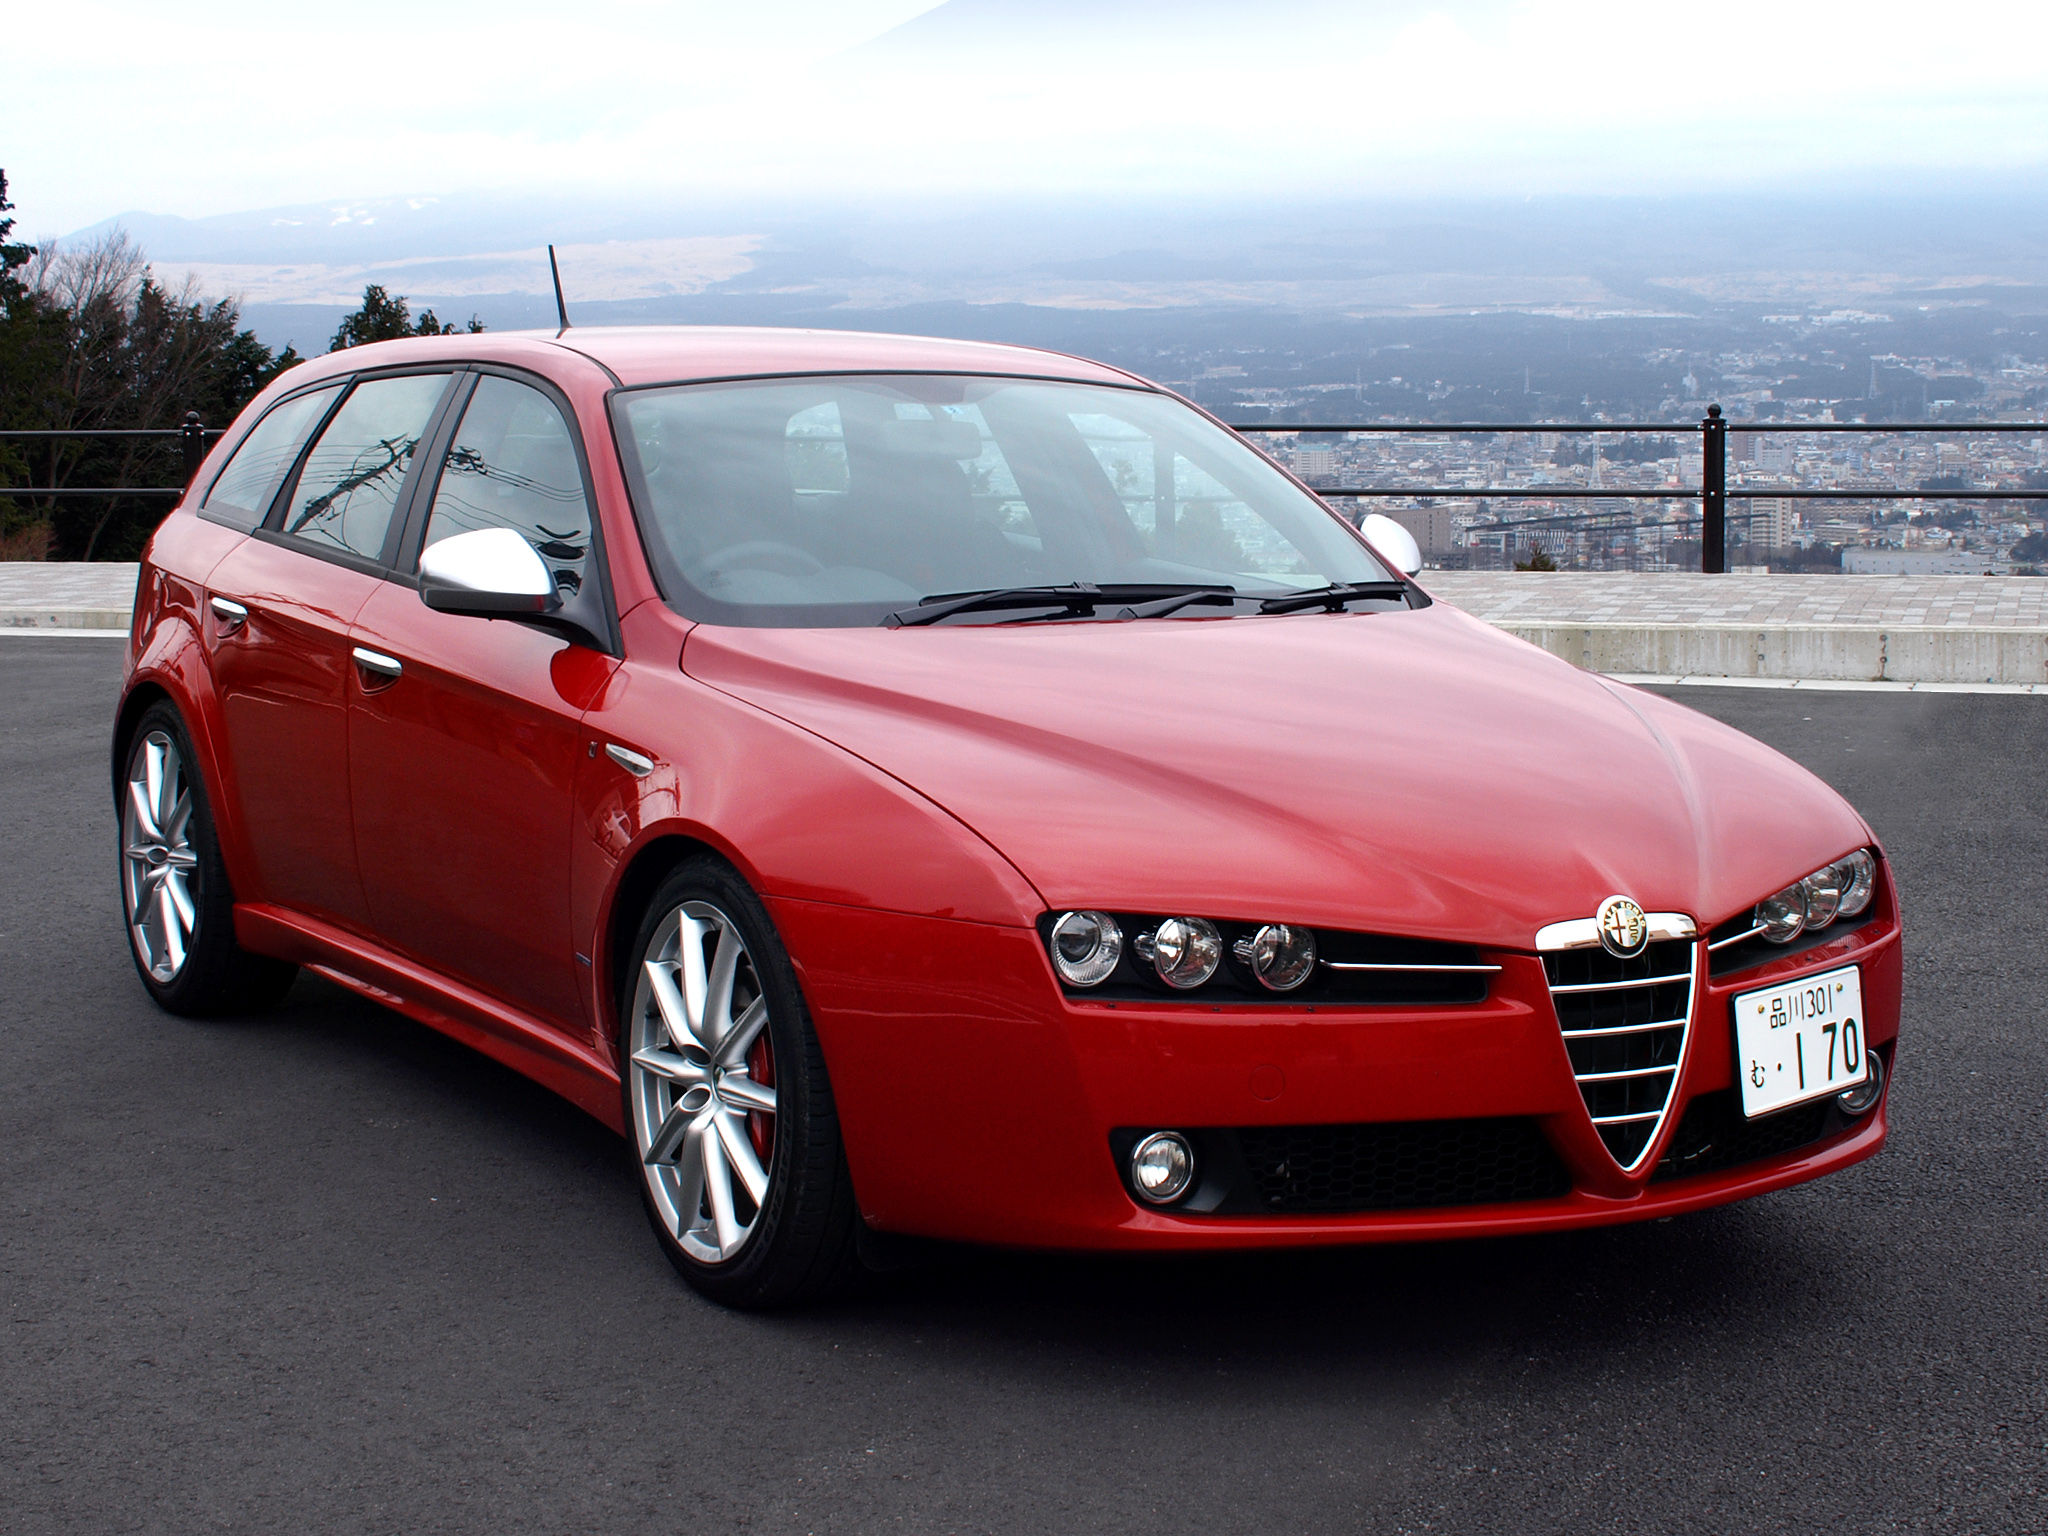 2008 alfa romeo 159 sportwagon – pictures, information and specs